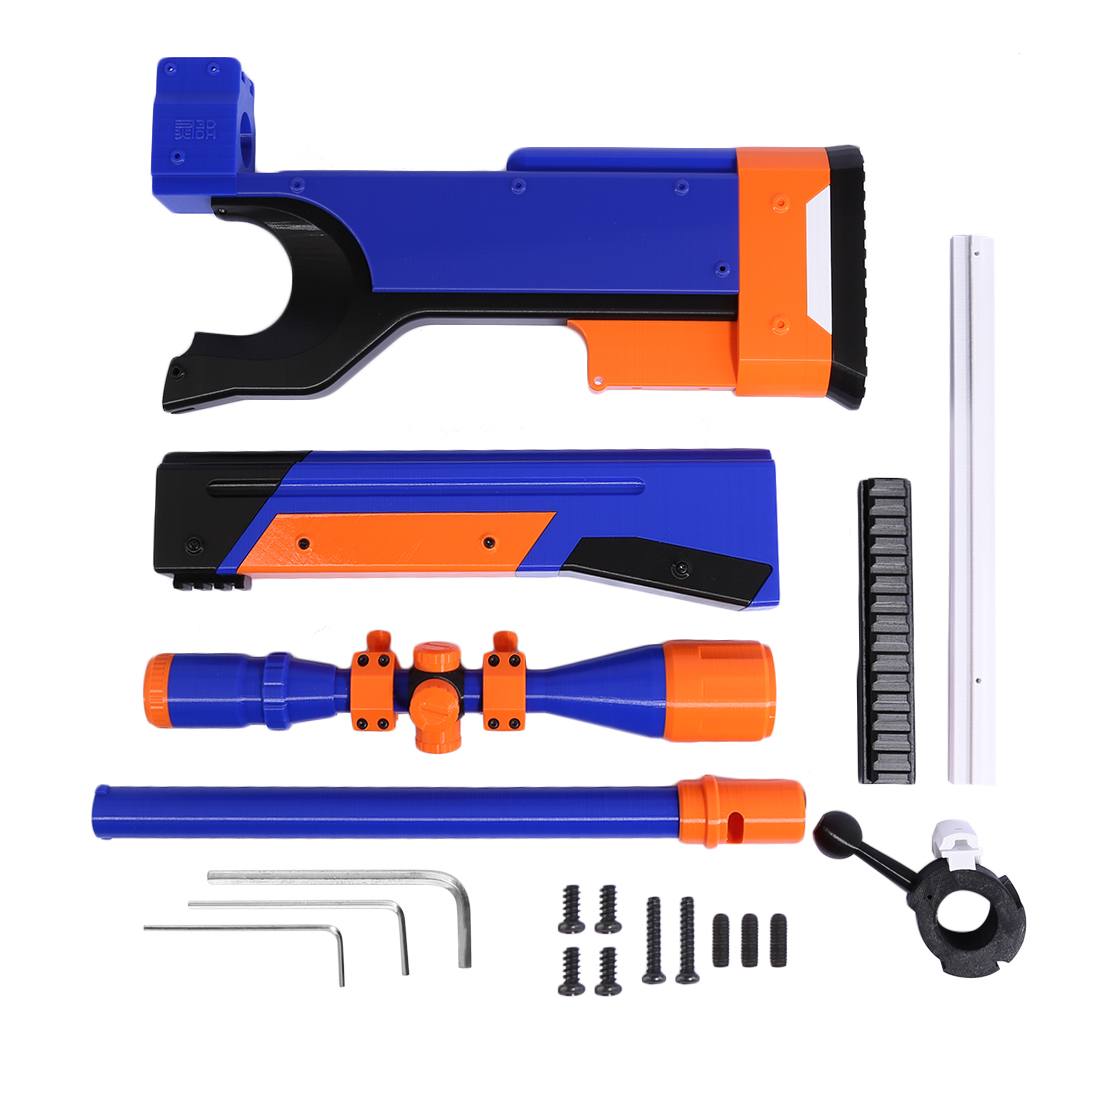 Tactical Kid Toy Gun 3D Printing Appearance Modification Kit for Nerf Retaliator Blasters Accessories Component Blue